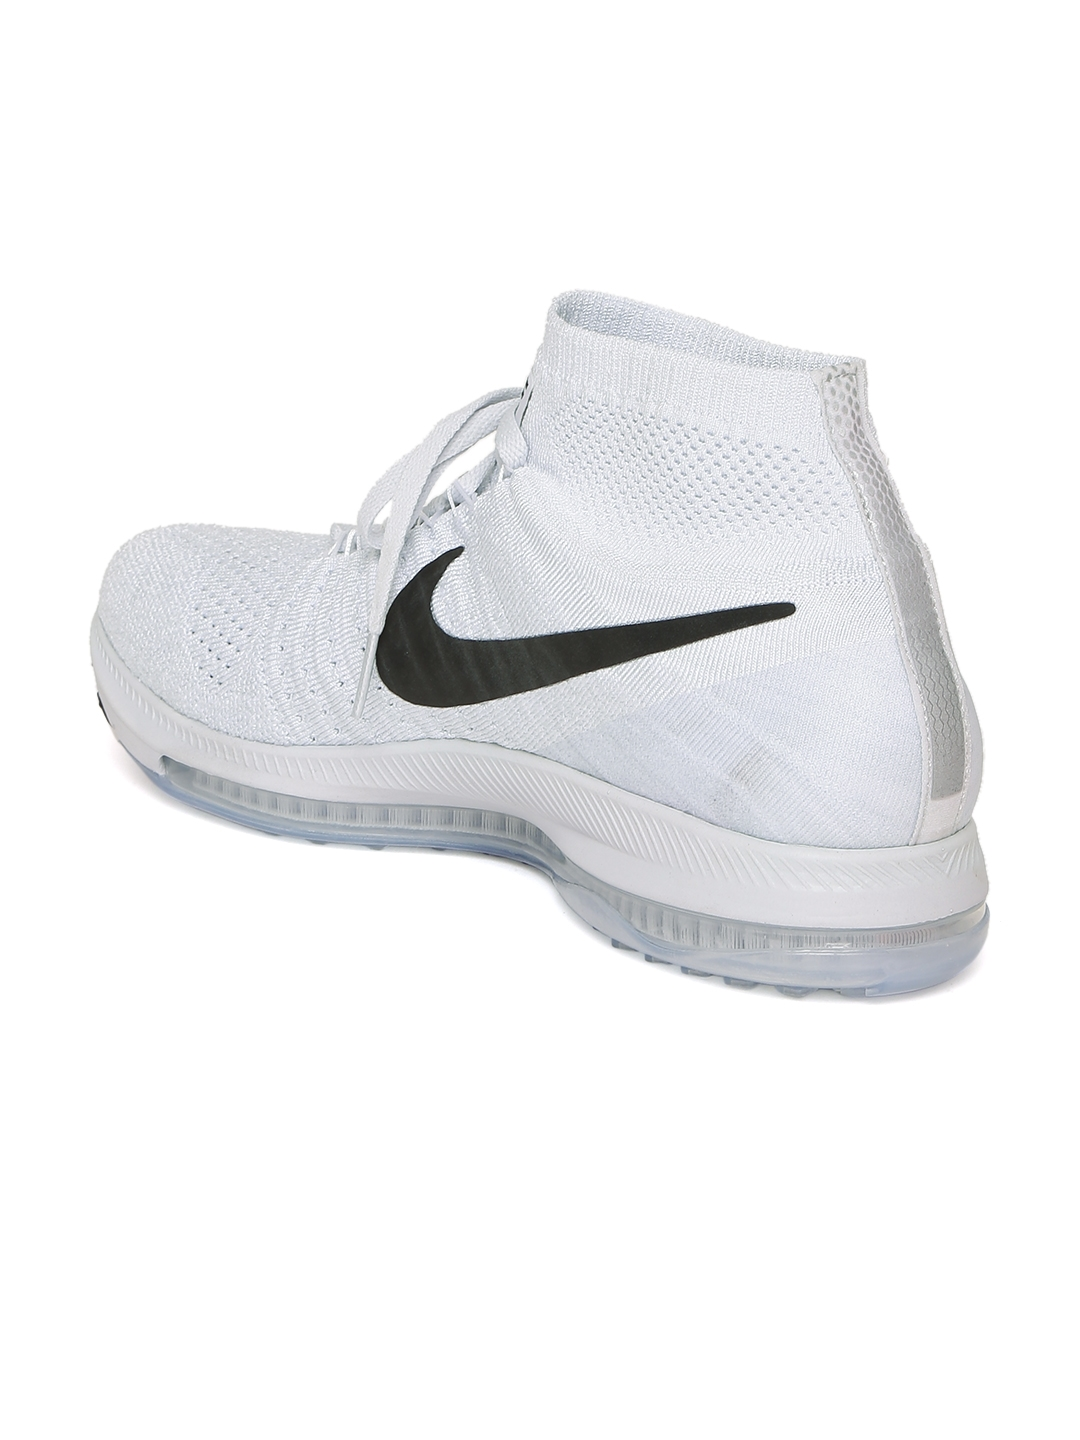 Buy Nike Men Grey Zoom All Out Flyknit Mid Top Running Shoes ... c0d3b2b52